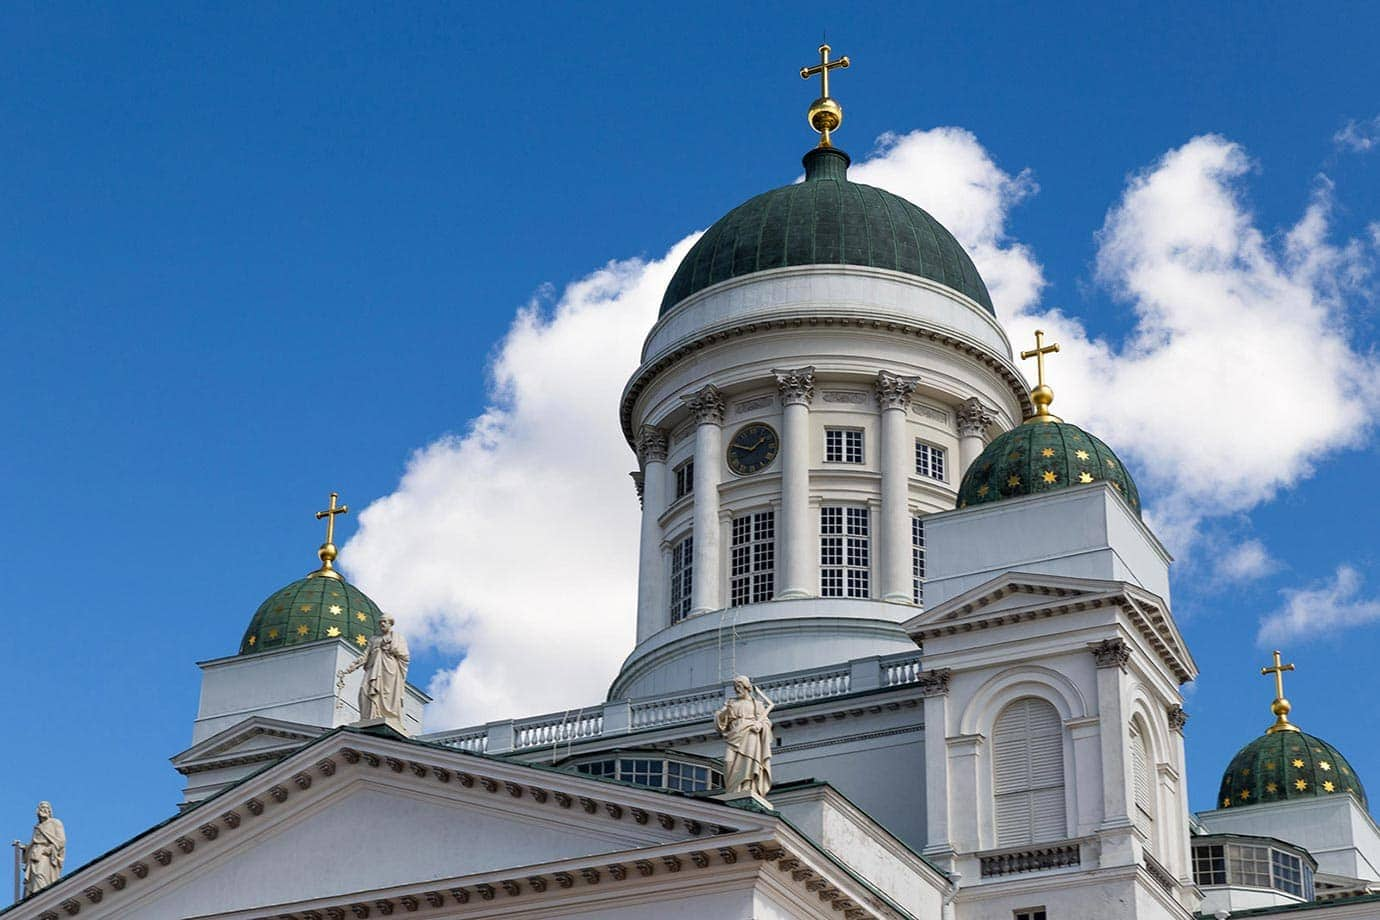 18 Things You've Got to do in Helsinki